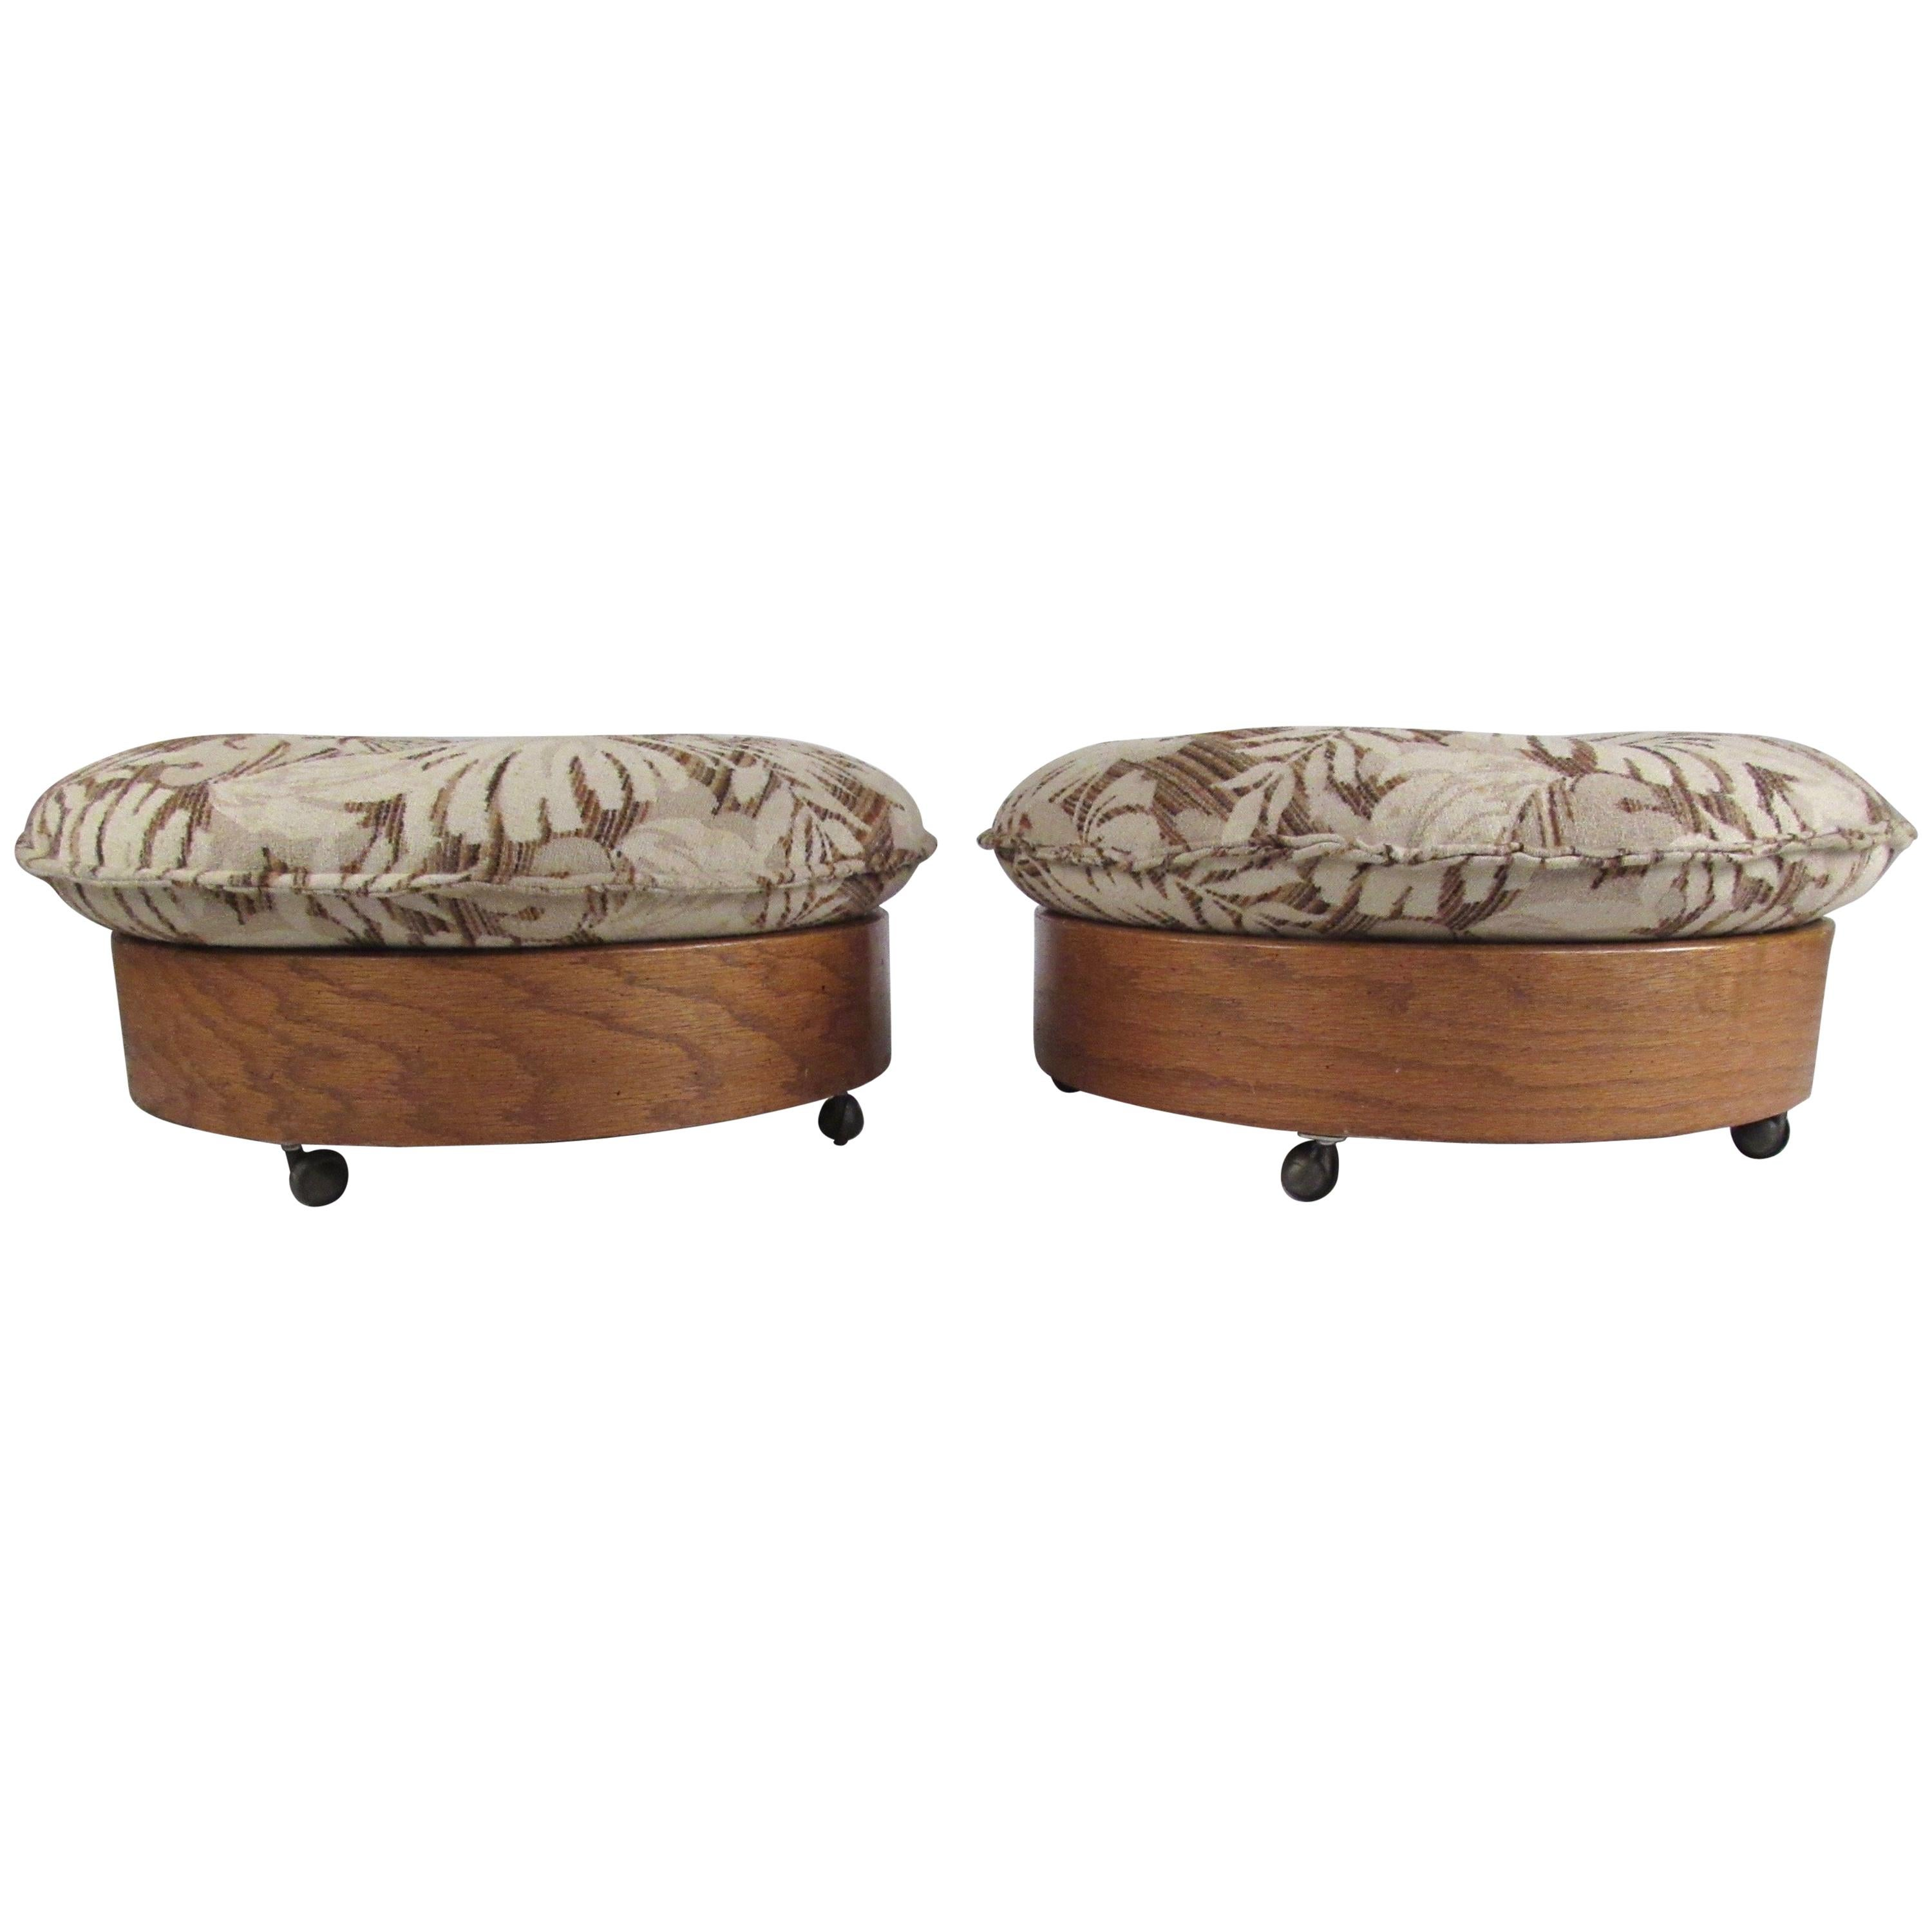 Rolling Ottoman Coffee Table.Vintage Rolling Ottoman Or Table A Pair